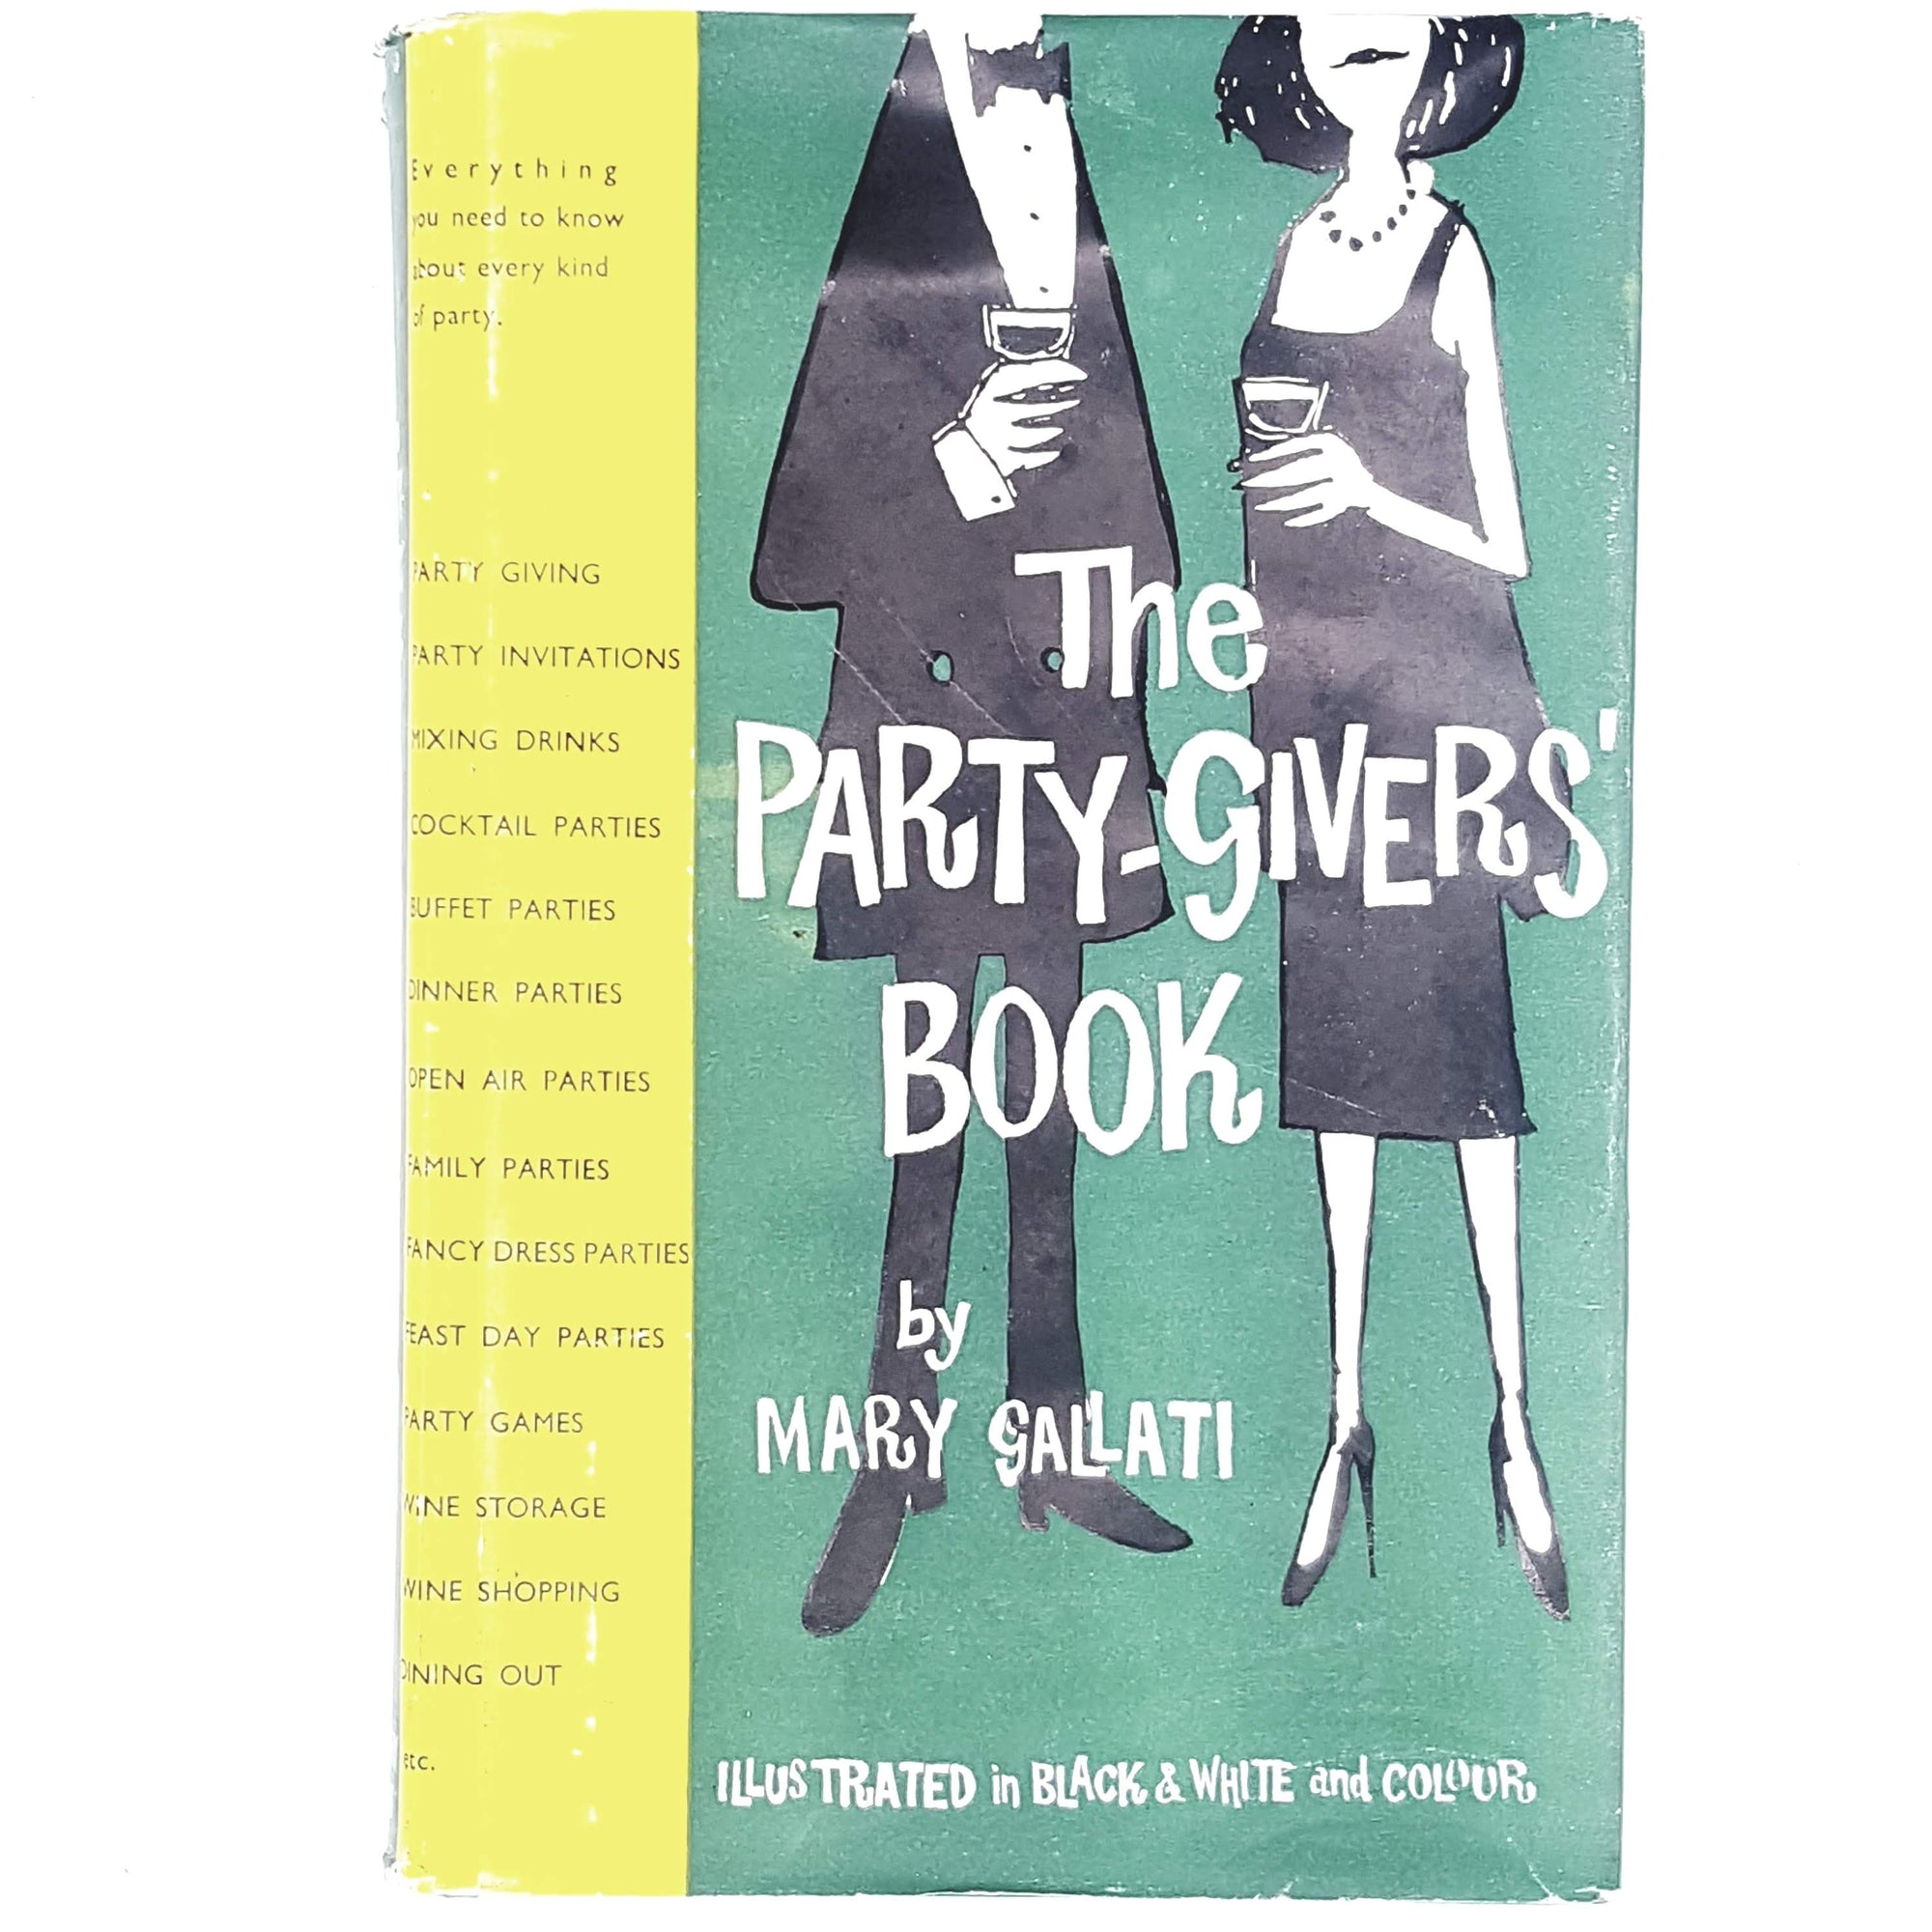 Illustrated The Party-Giver's Book 1959